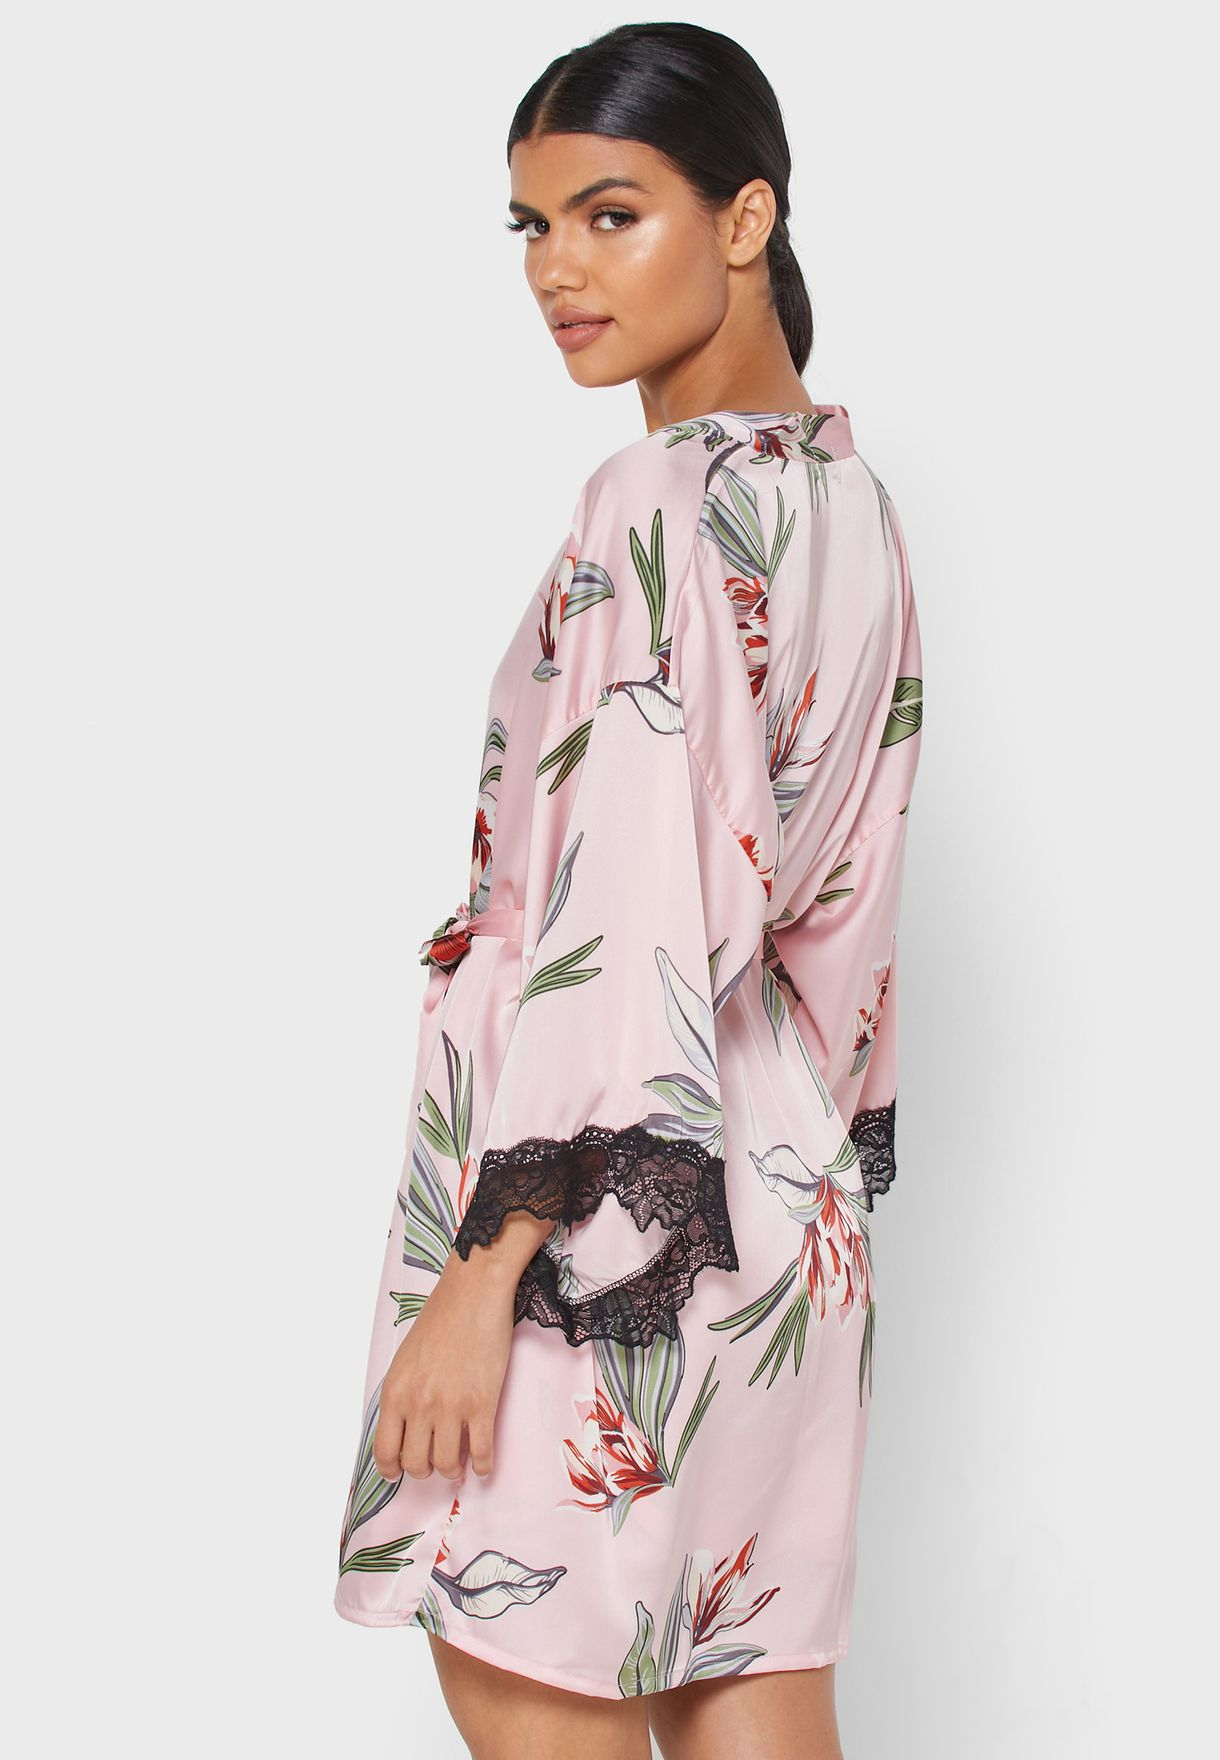 Floral Print 2 In 1 Nightdress Robe